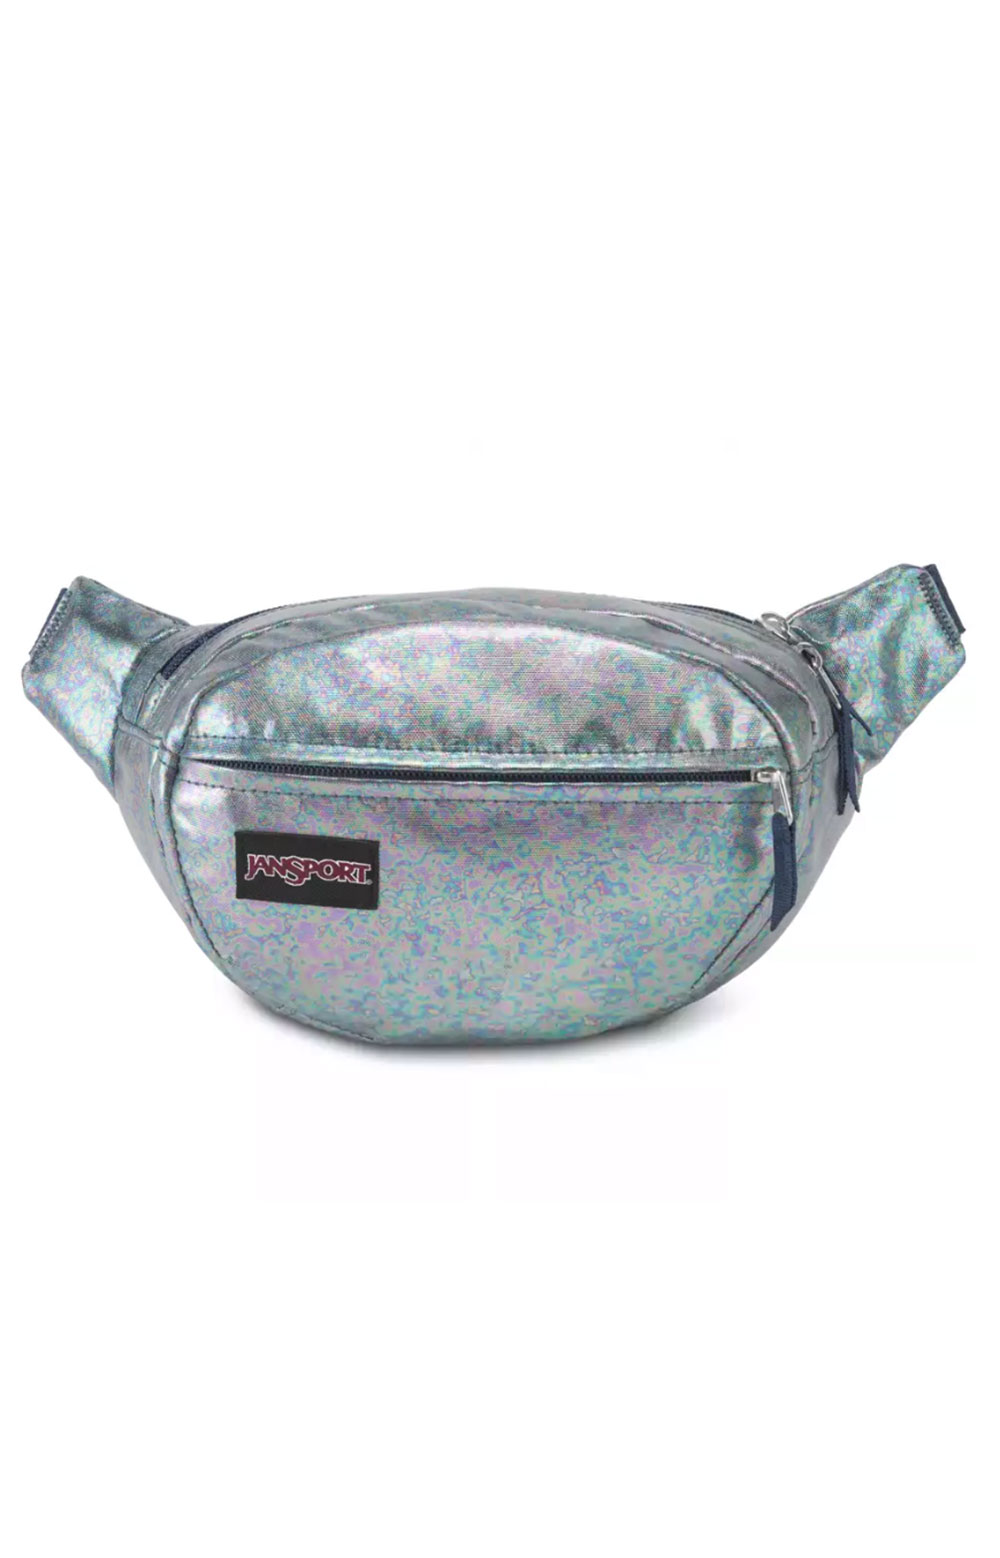 Fifth Avenue FX Fanny Pack - Mermaid Pearlized Shine